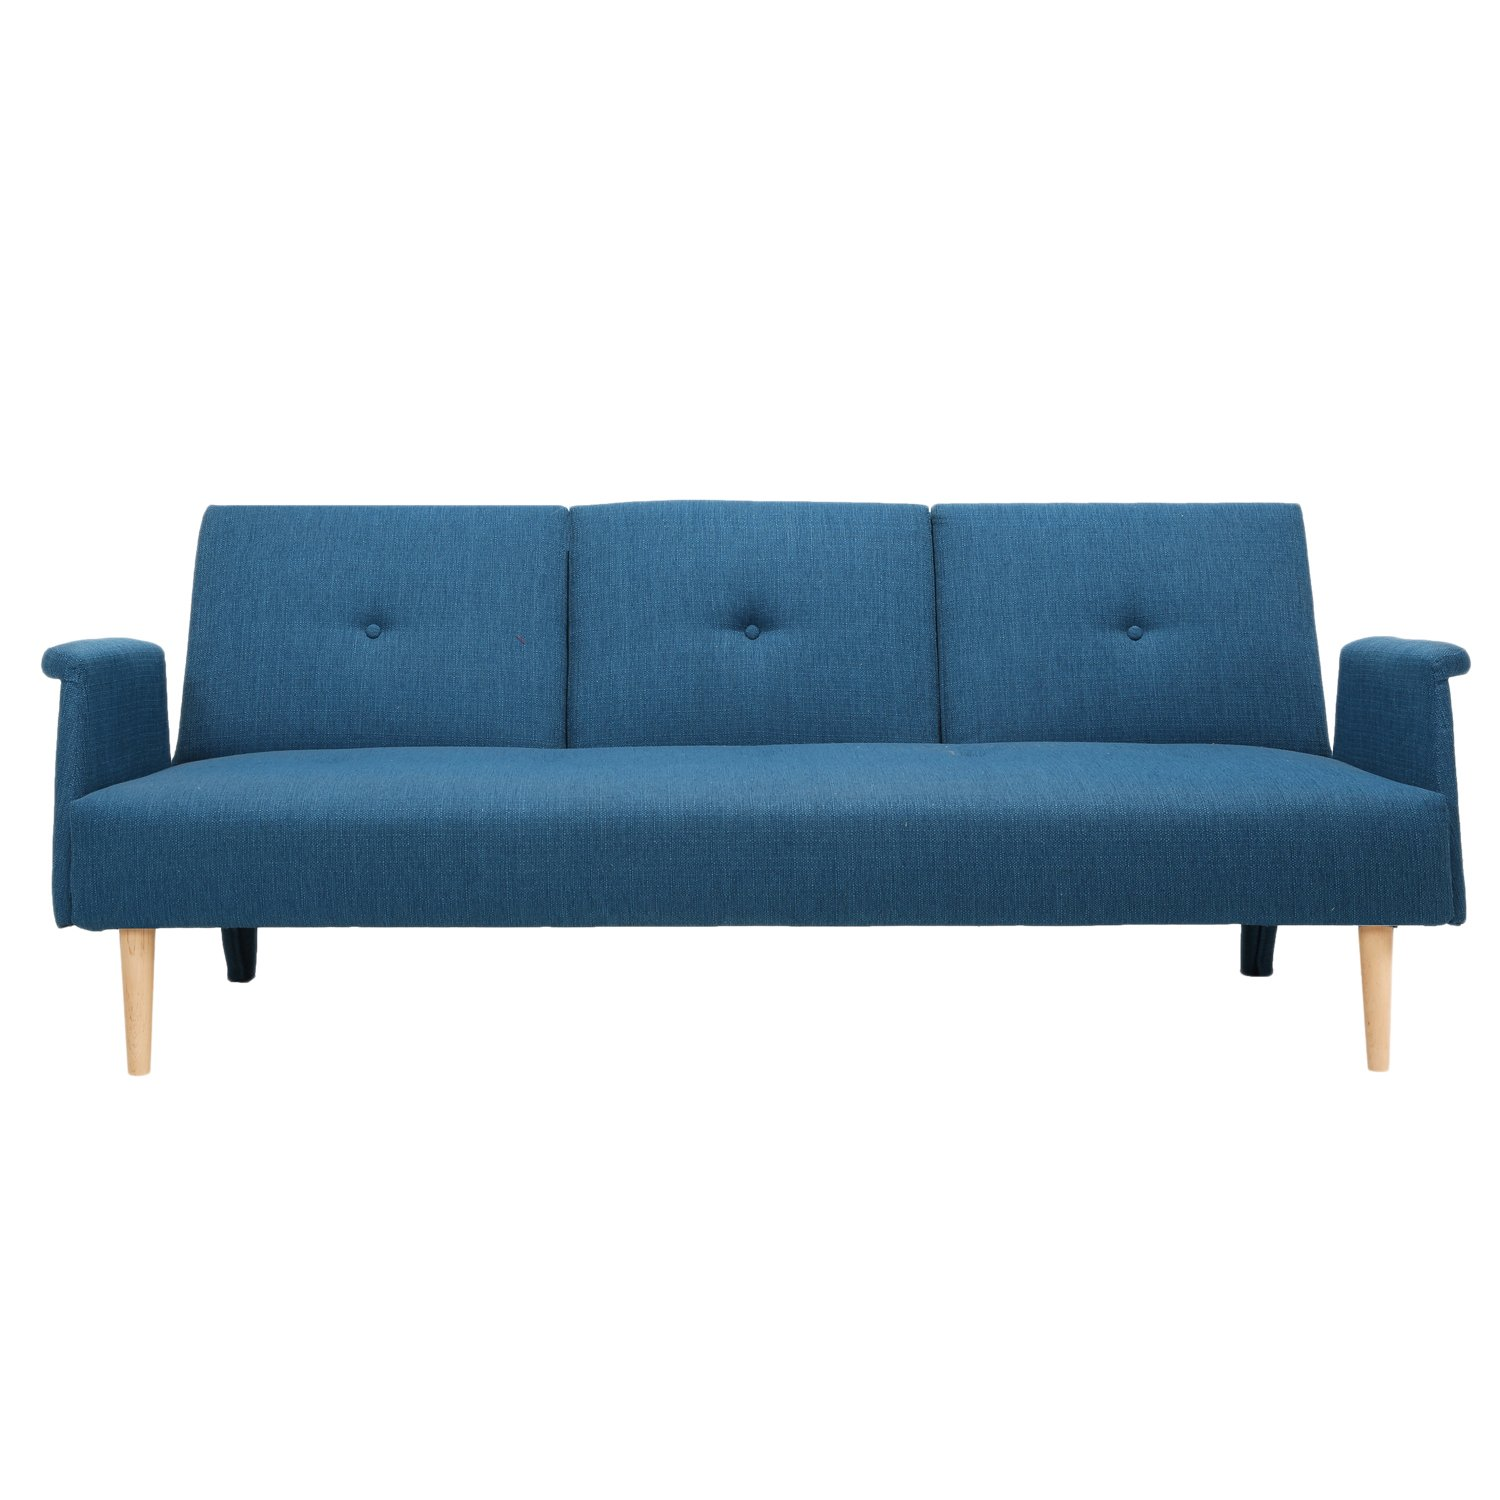 Top 3 Best Divan Sofas